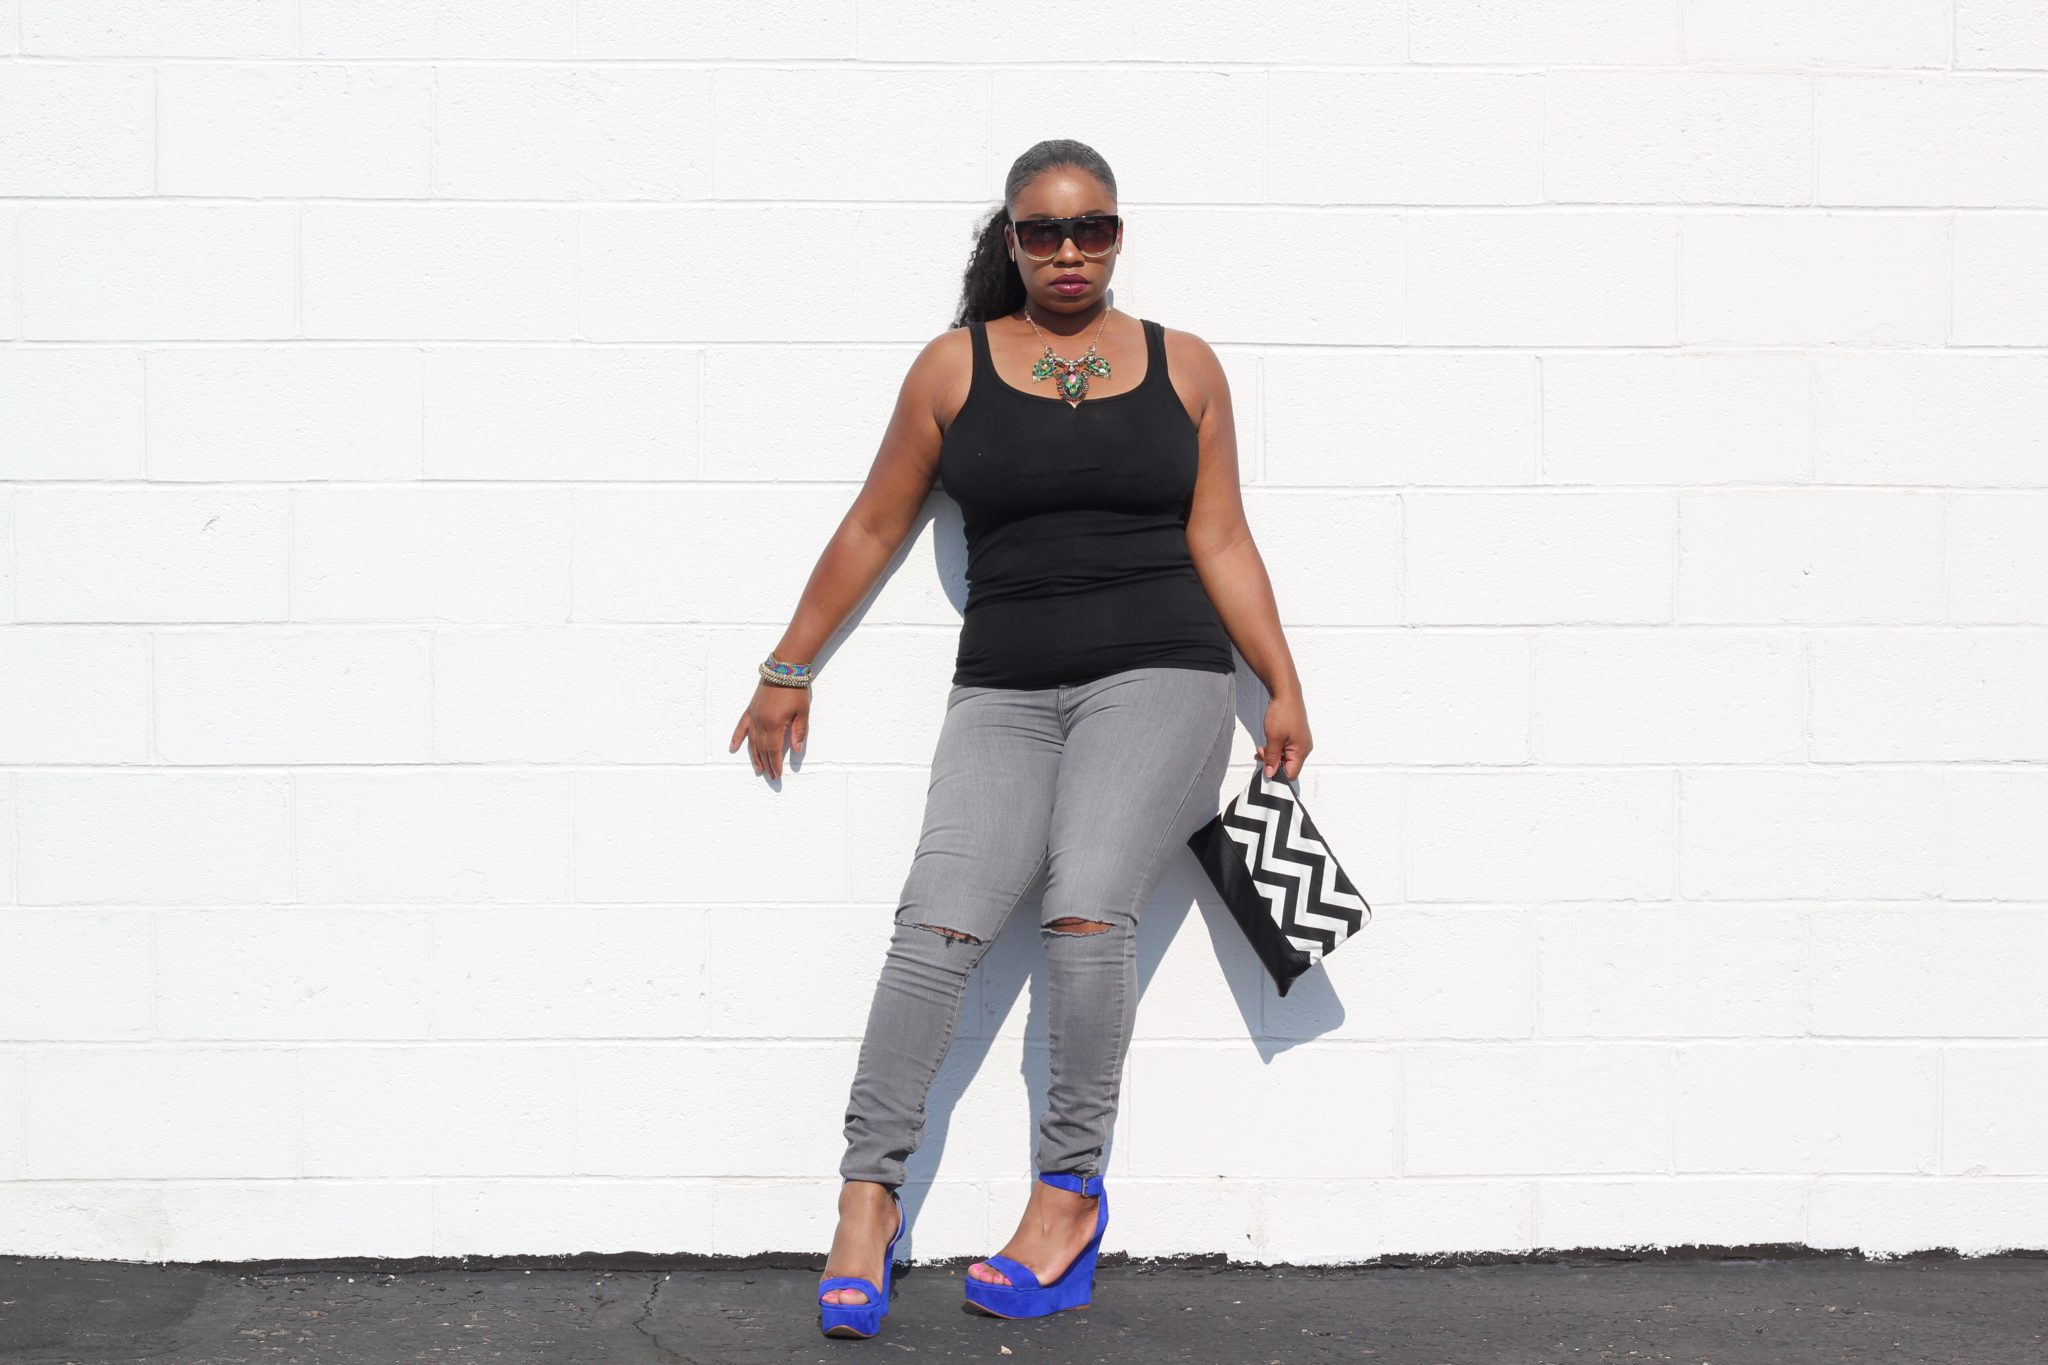 publish_snapshot-4-1 Pops!F21 Fashion Forever 21 how to OOTD Sassy Jones Boutique